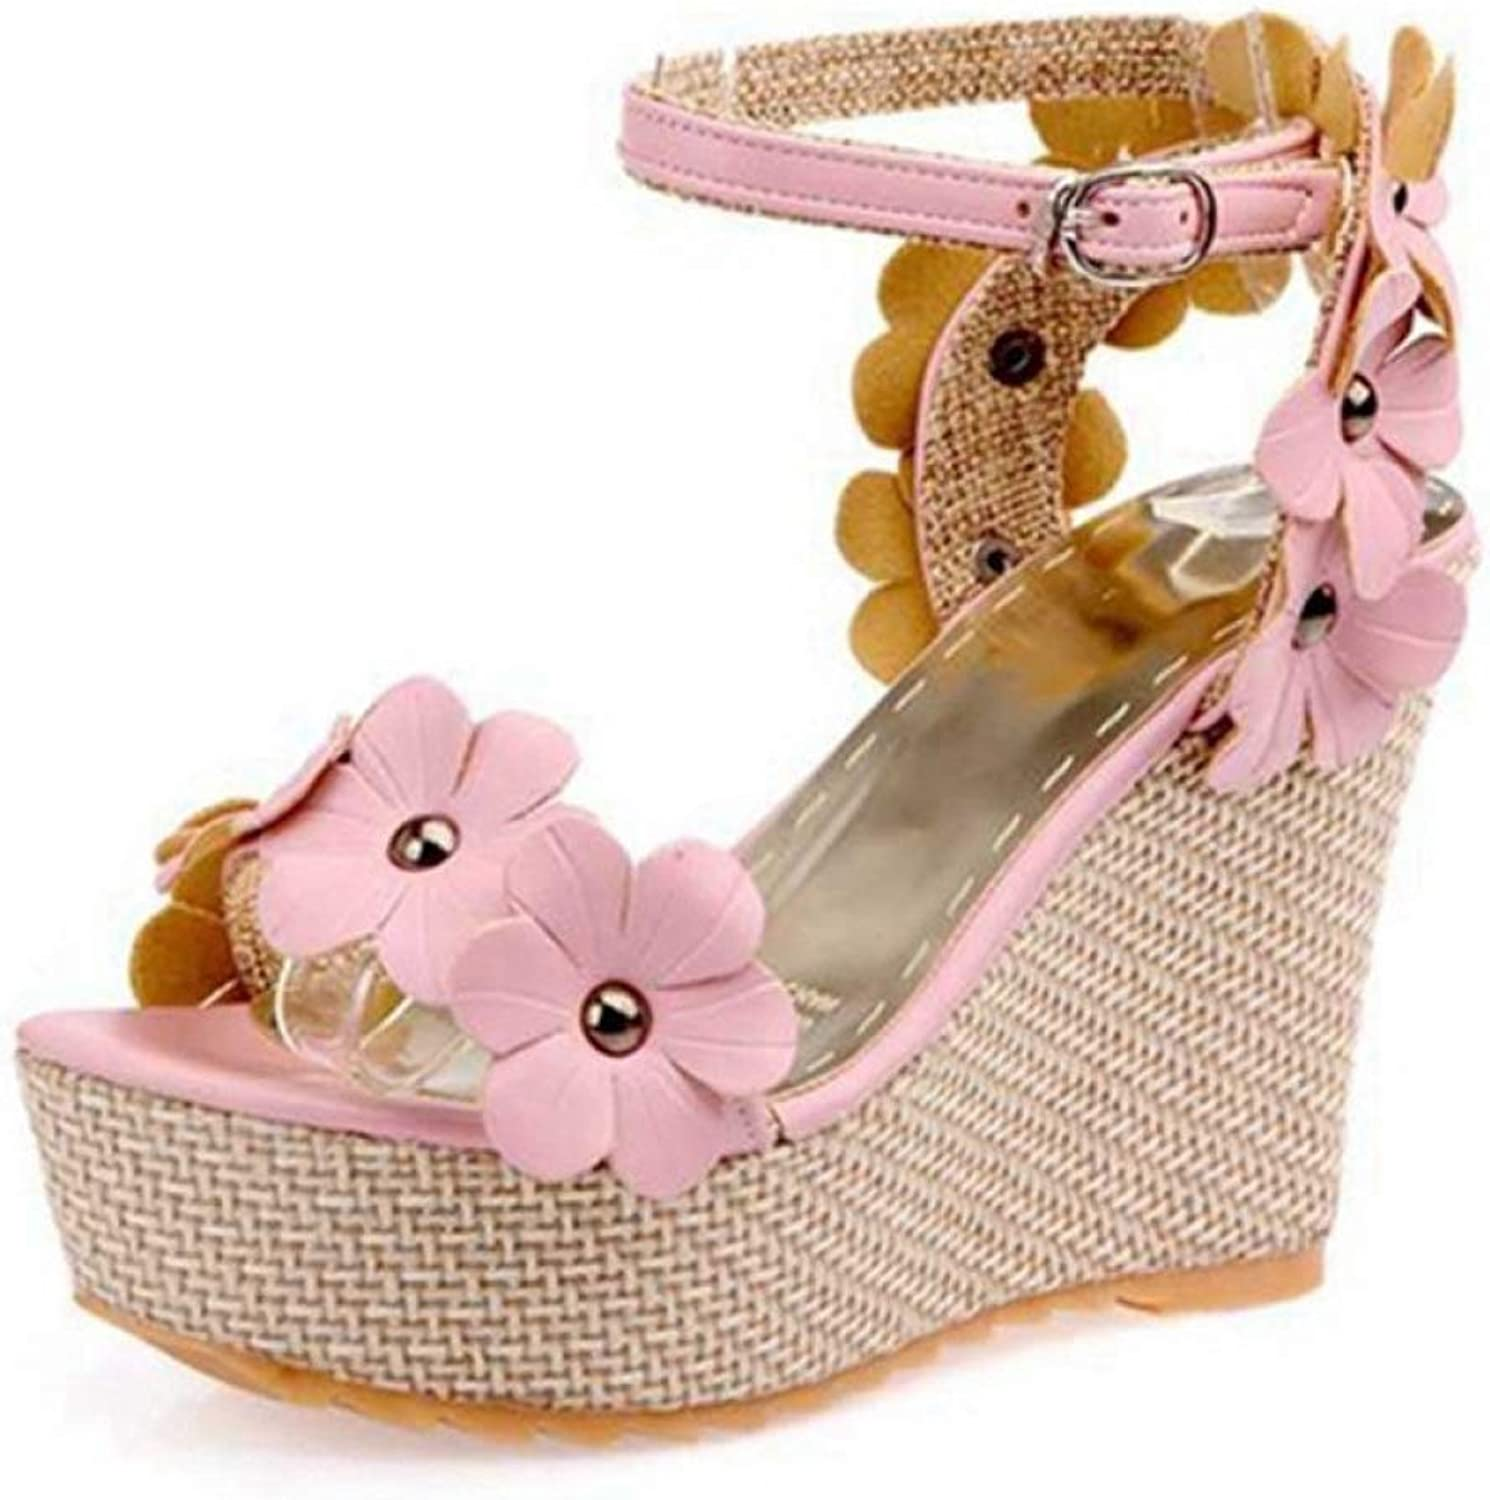 Hoxekle Summer Women Sandals Wedges Flower Buckle Platforms bluee Pink White Sweets Fashion Party Ladies Female shoes